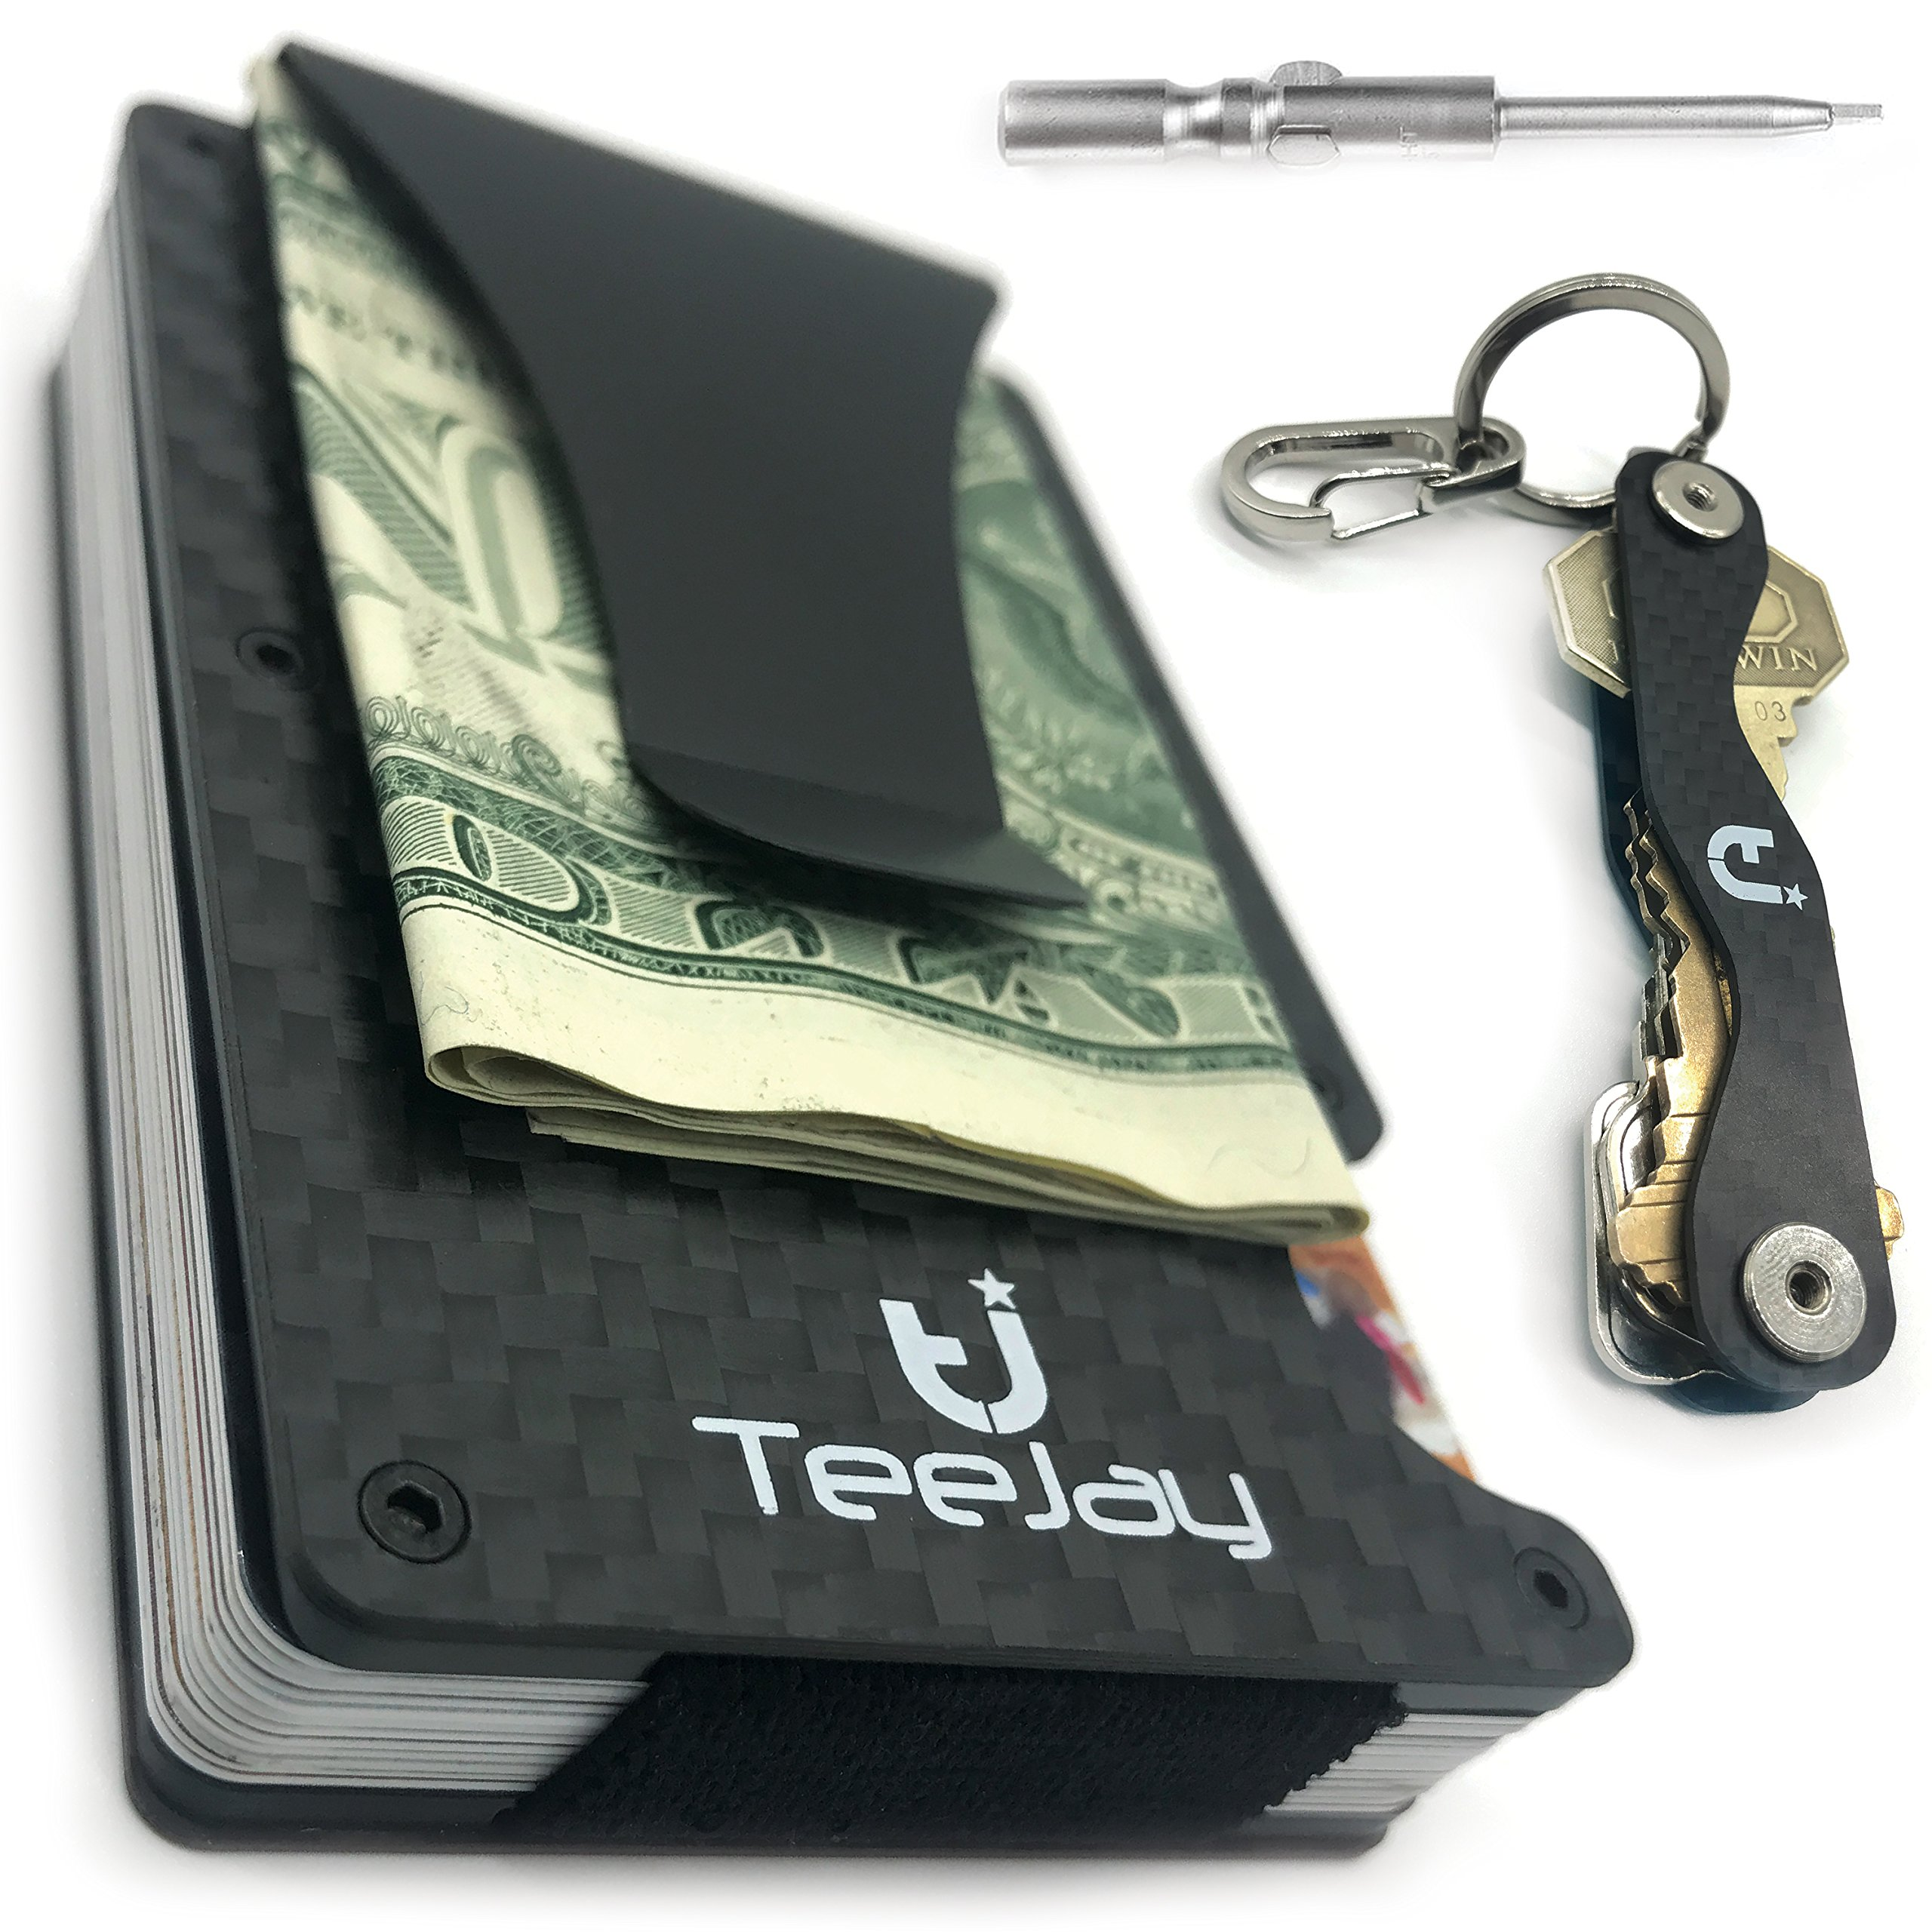 TeeJay Carbon Fiber Minimalist Wallet & Key Organizer Set. Premium Gift Box includes RFID Blocking Front Pocket Wallet And Modern Design Slim Pocket Keychain For Men and Women